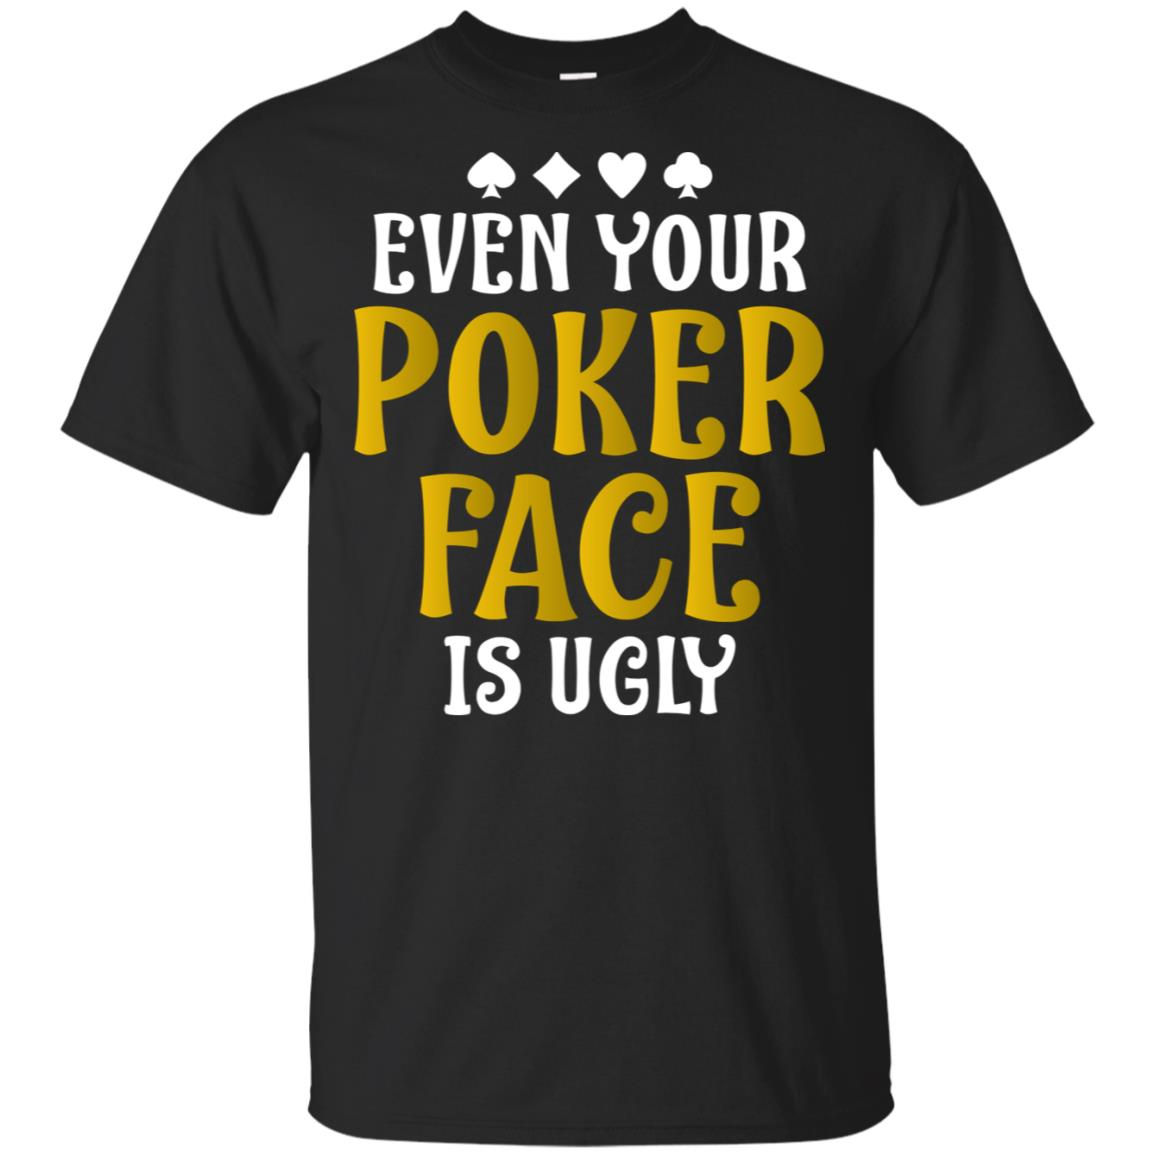 Even Your Poker Face Is Ugly Funny Gambler Casino Unisex Short Sleeve